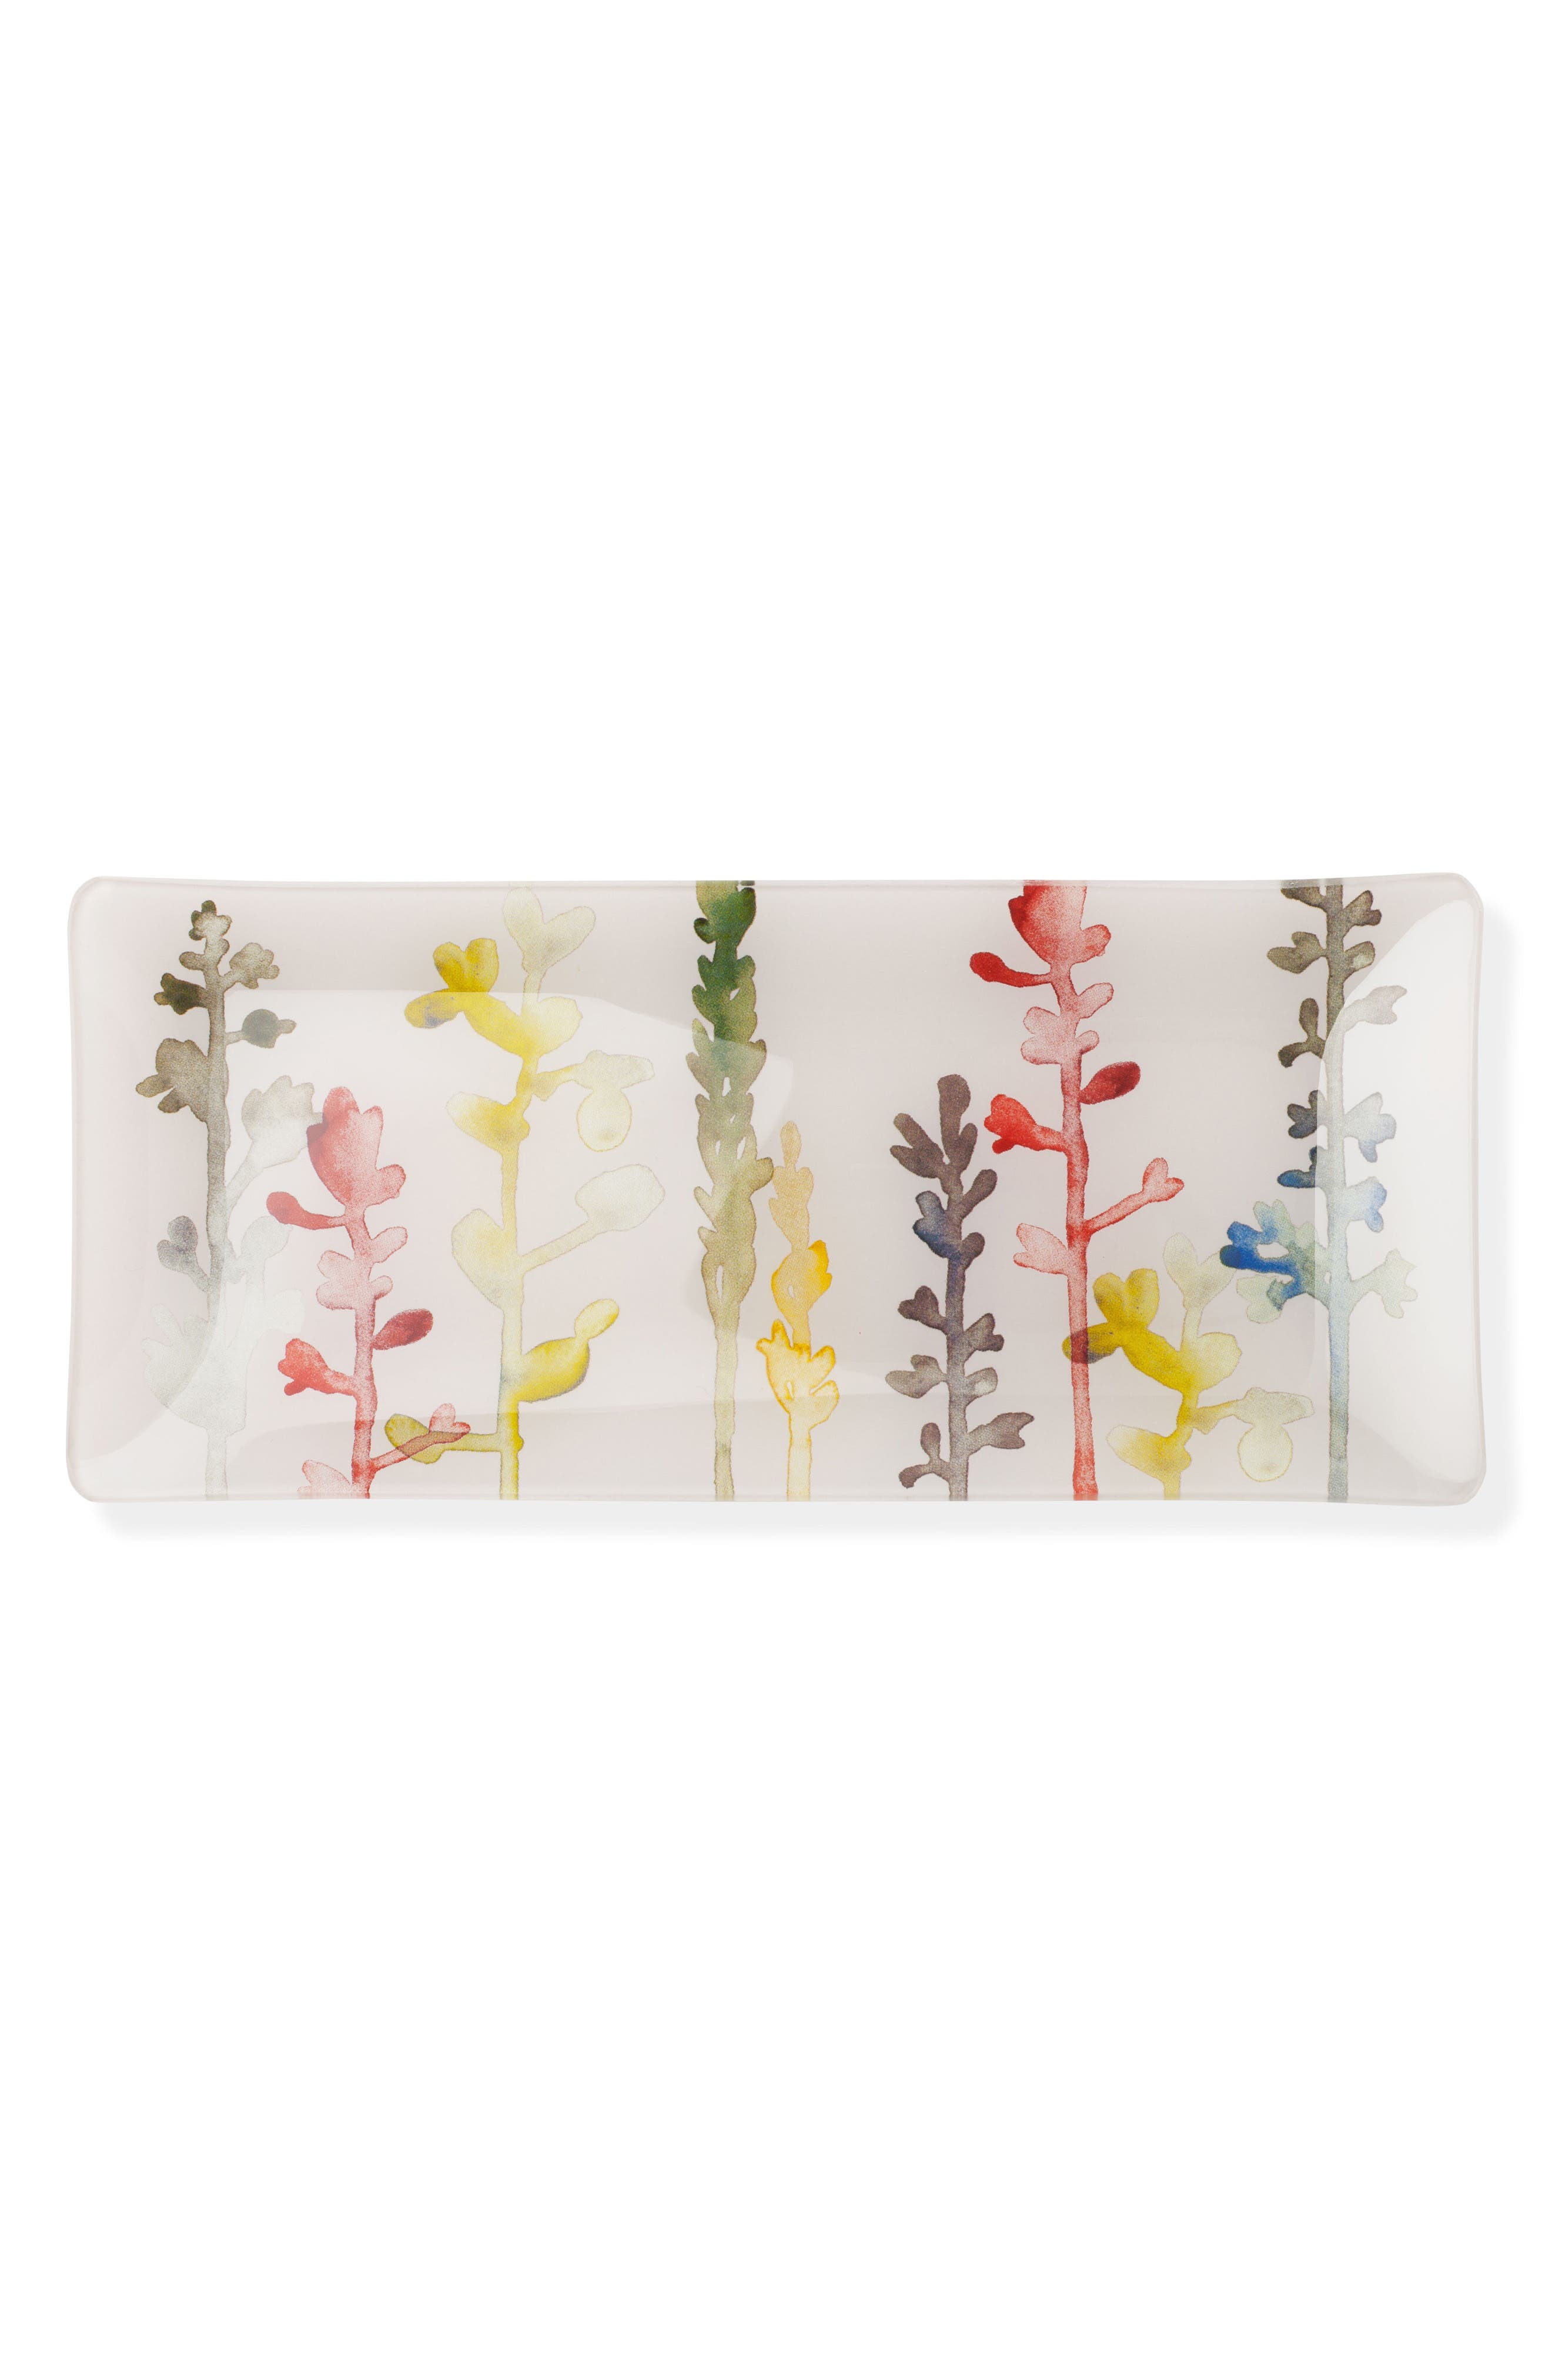 Alternate Image 1 Selected - Fringe Studio Watercolor Stems Trinket Tray